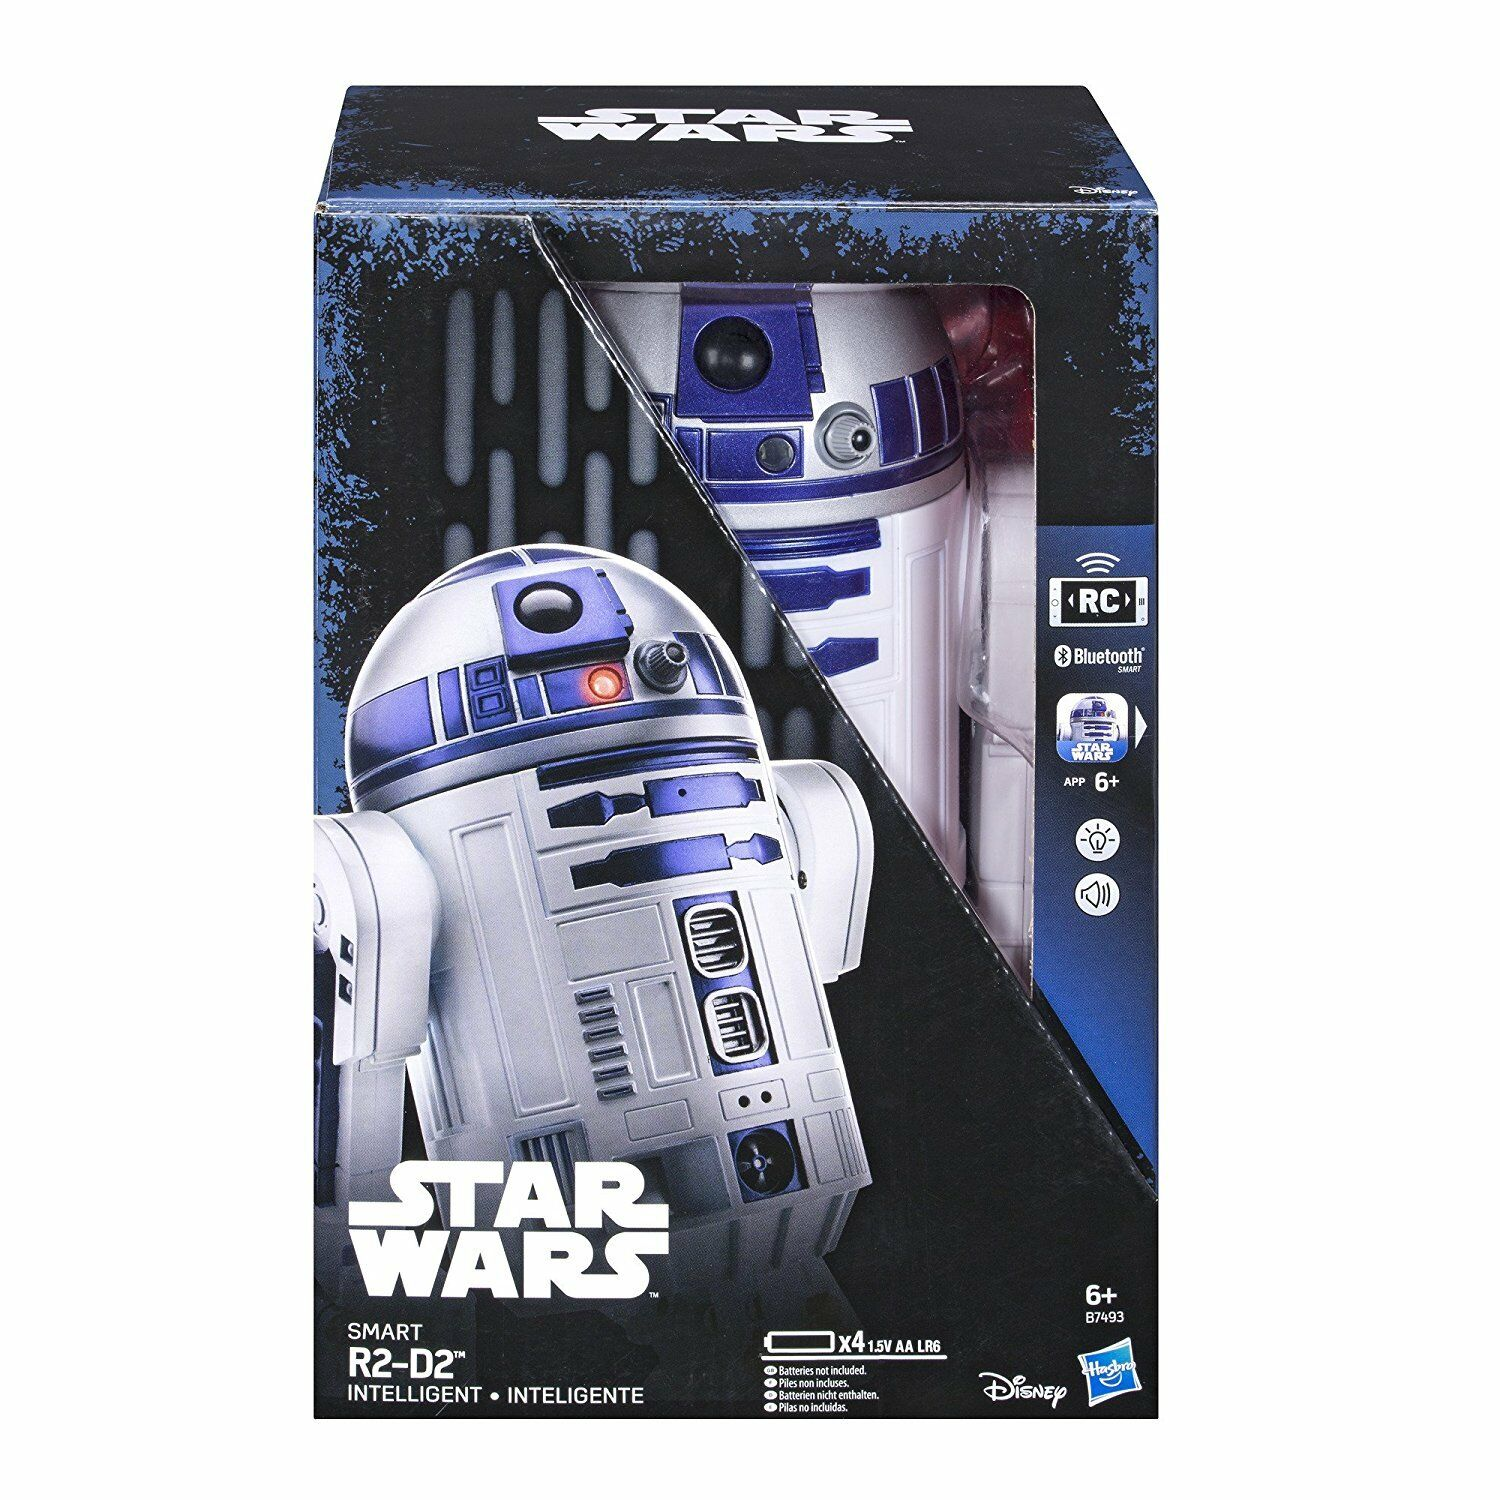 NEW Star Wars Smart App Enabled R2-D2 Remote Control Robot RC Interactive Droid